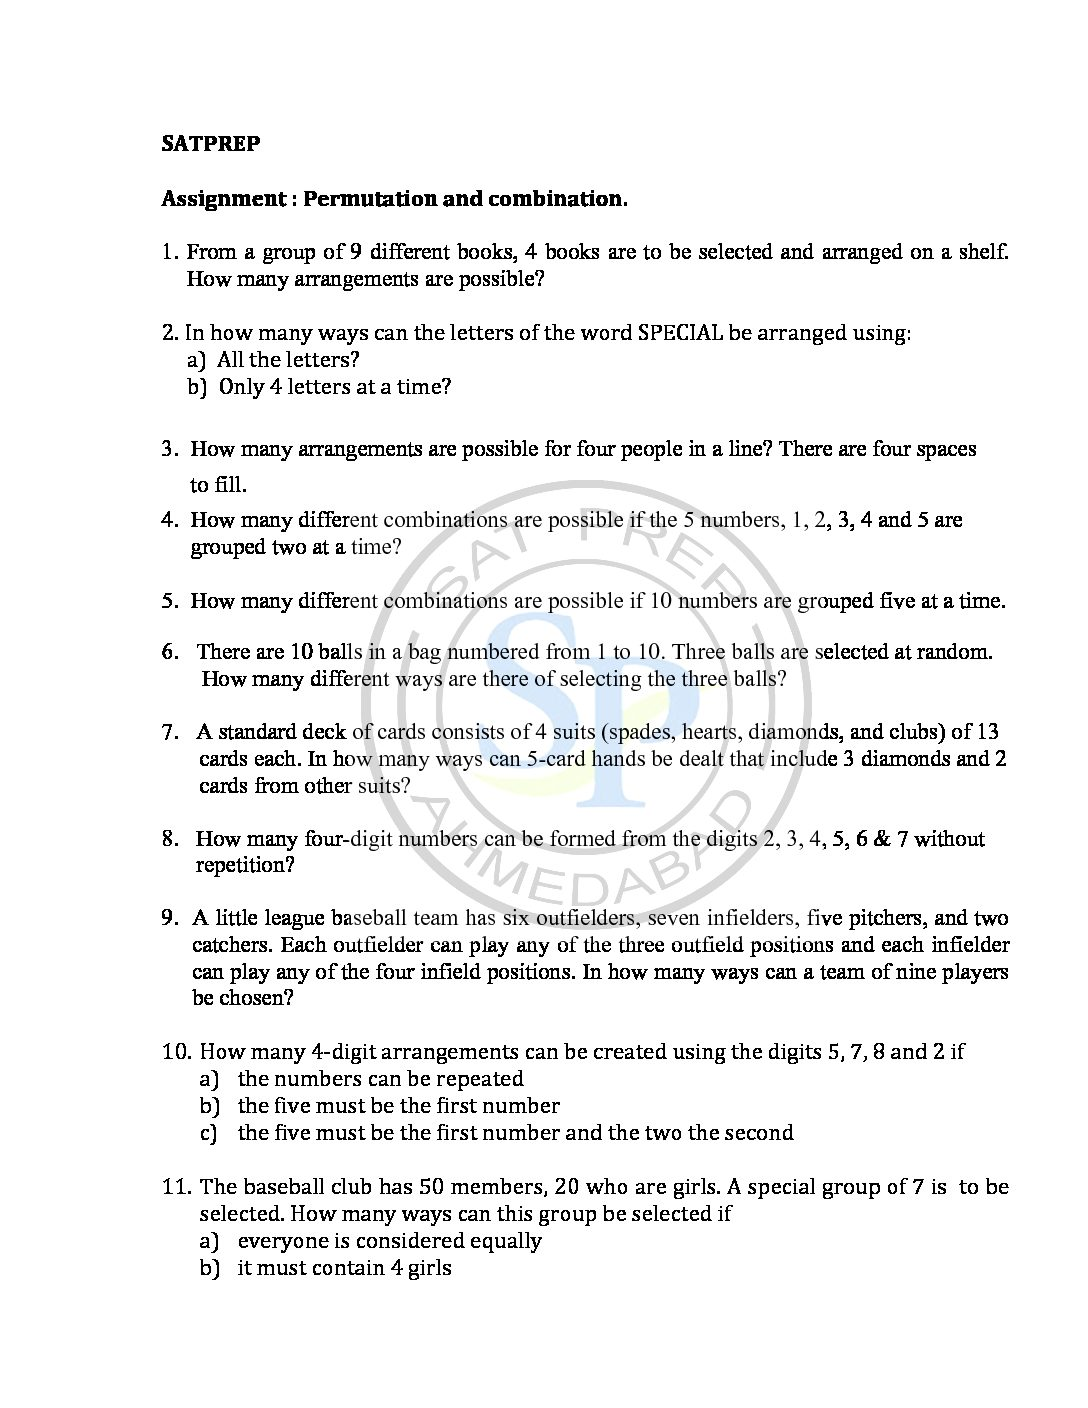 Combination and permutation Archives - SAT PREP